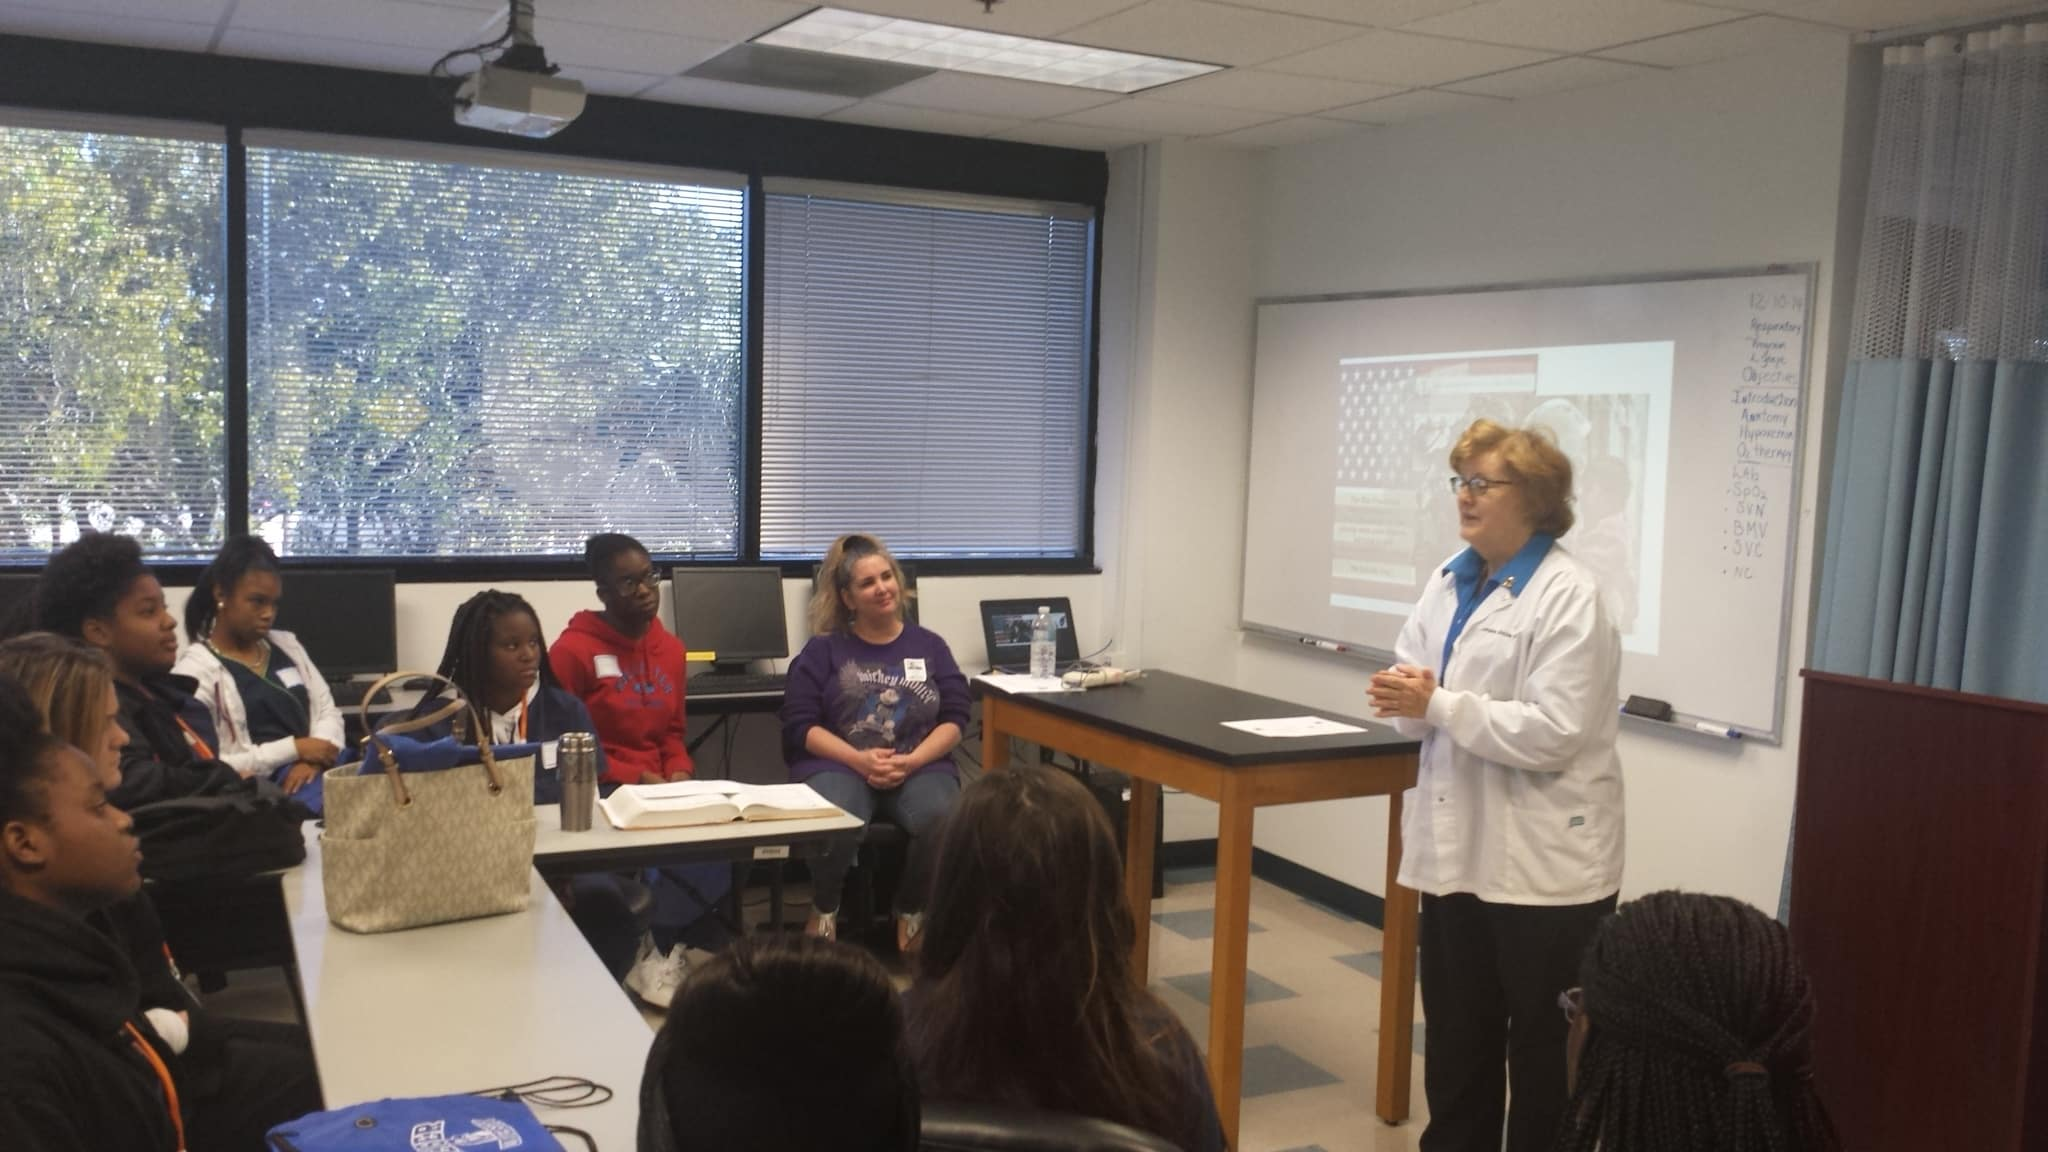 Local High Schools Visit the Ft. Lauderdale Campus